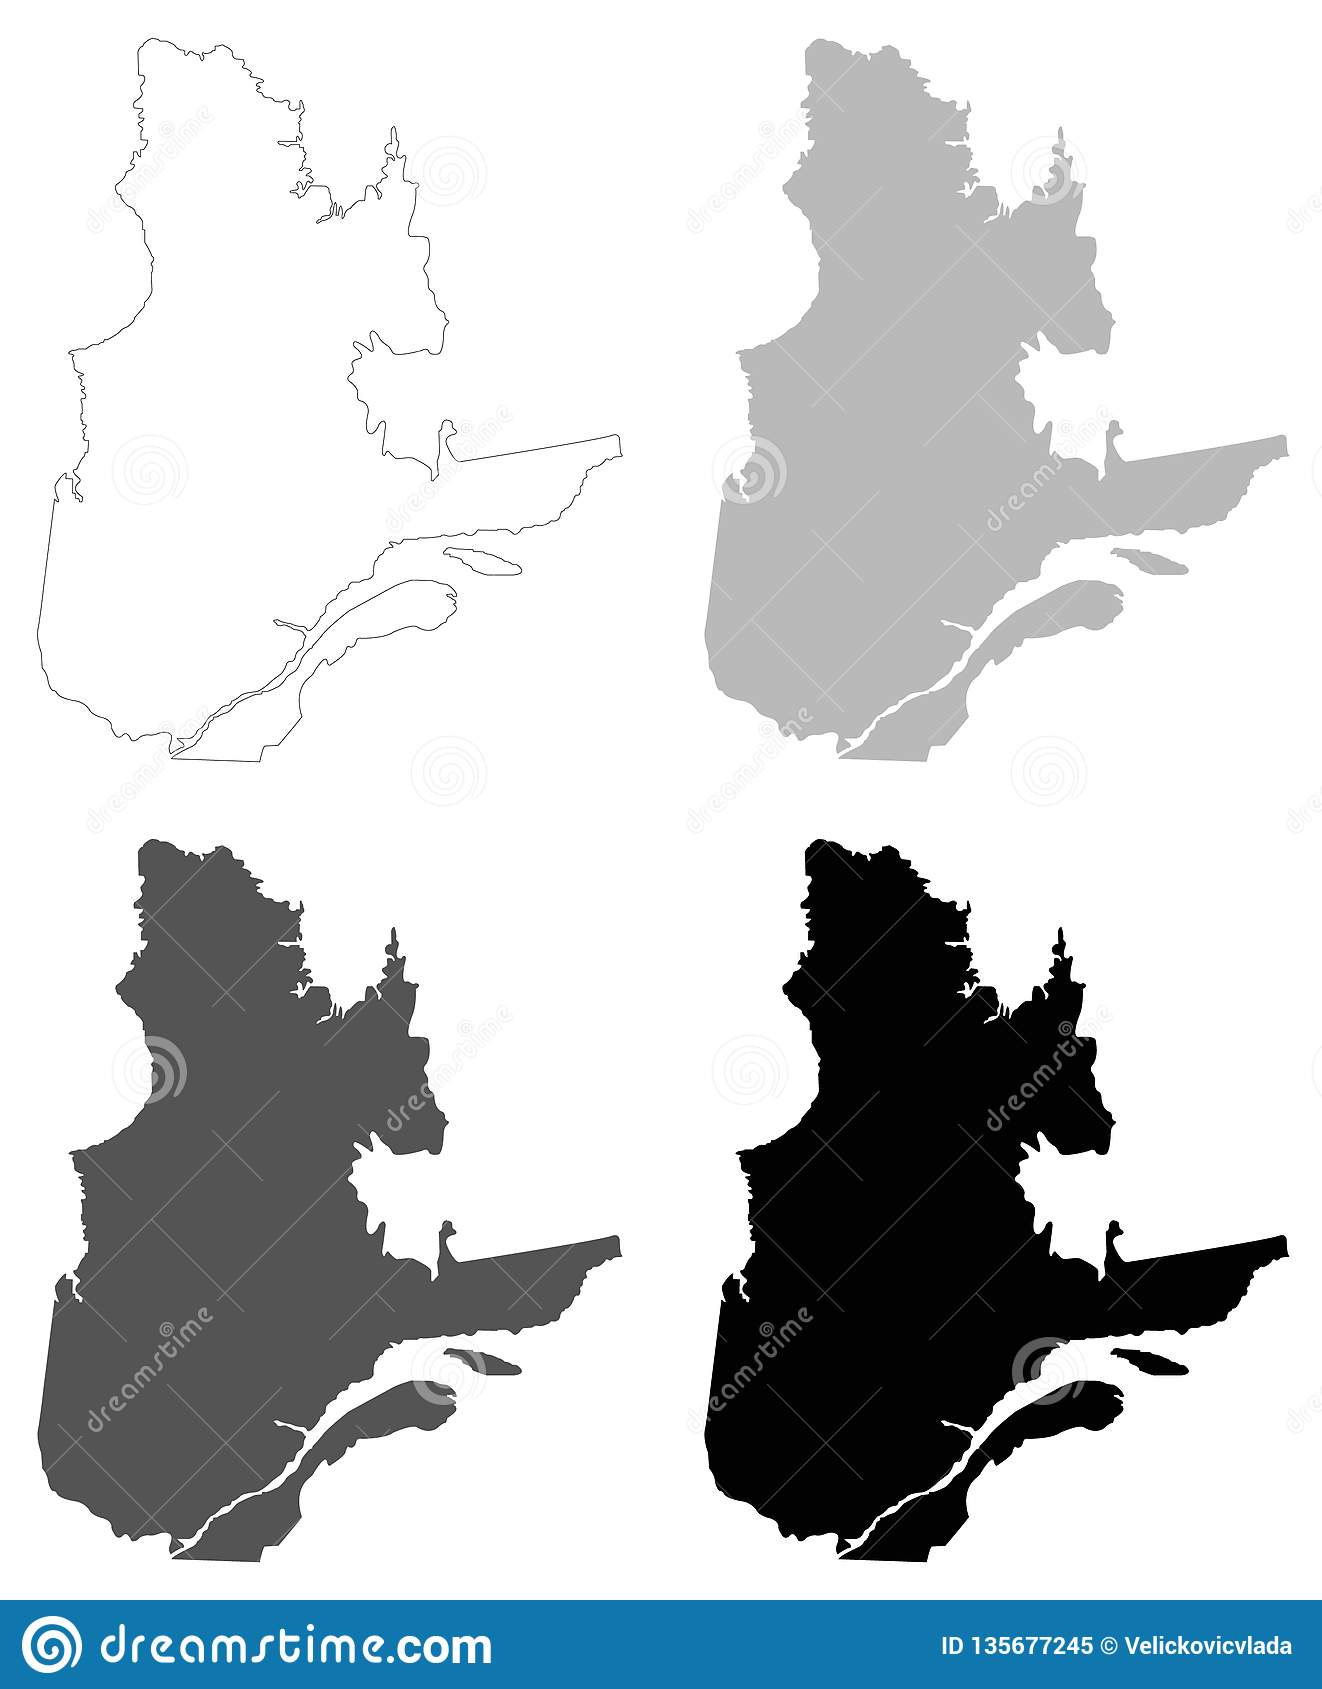 Map Of The Provinces And Territories Of Canada.Quebec Map The Biggest Province And Territory Of Canada Stock